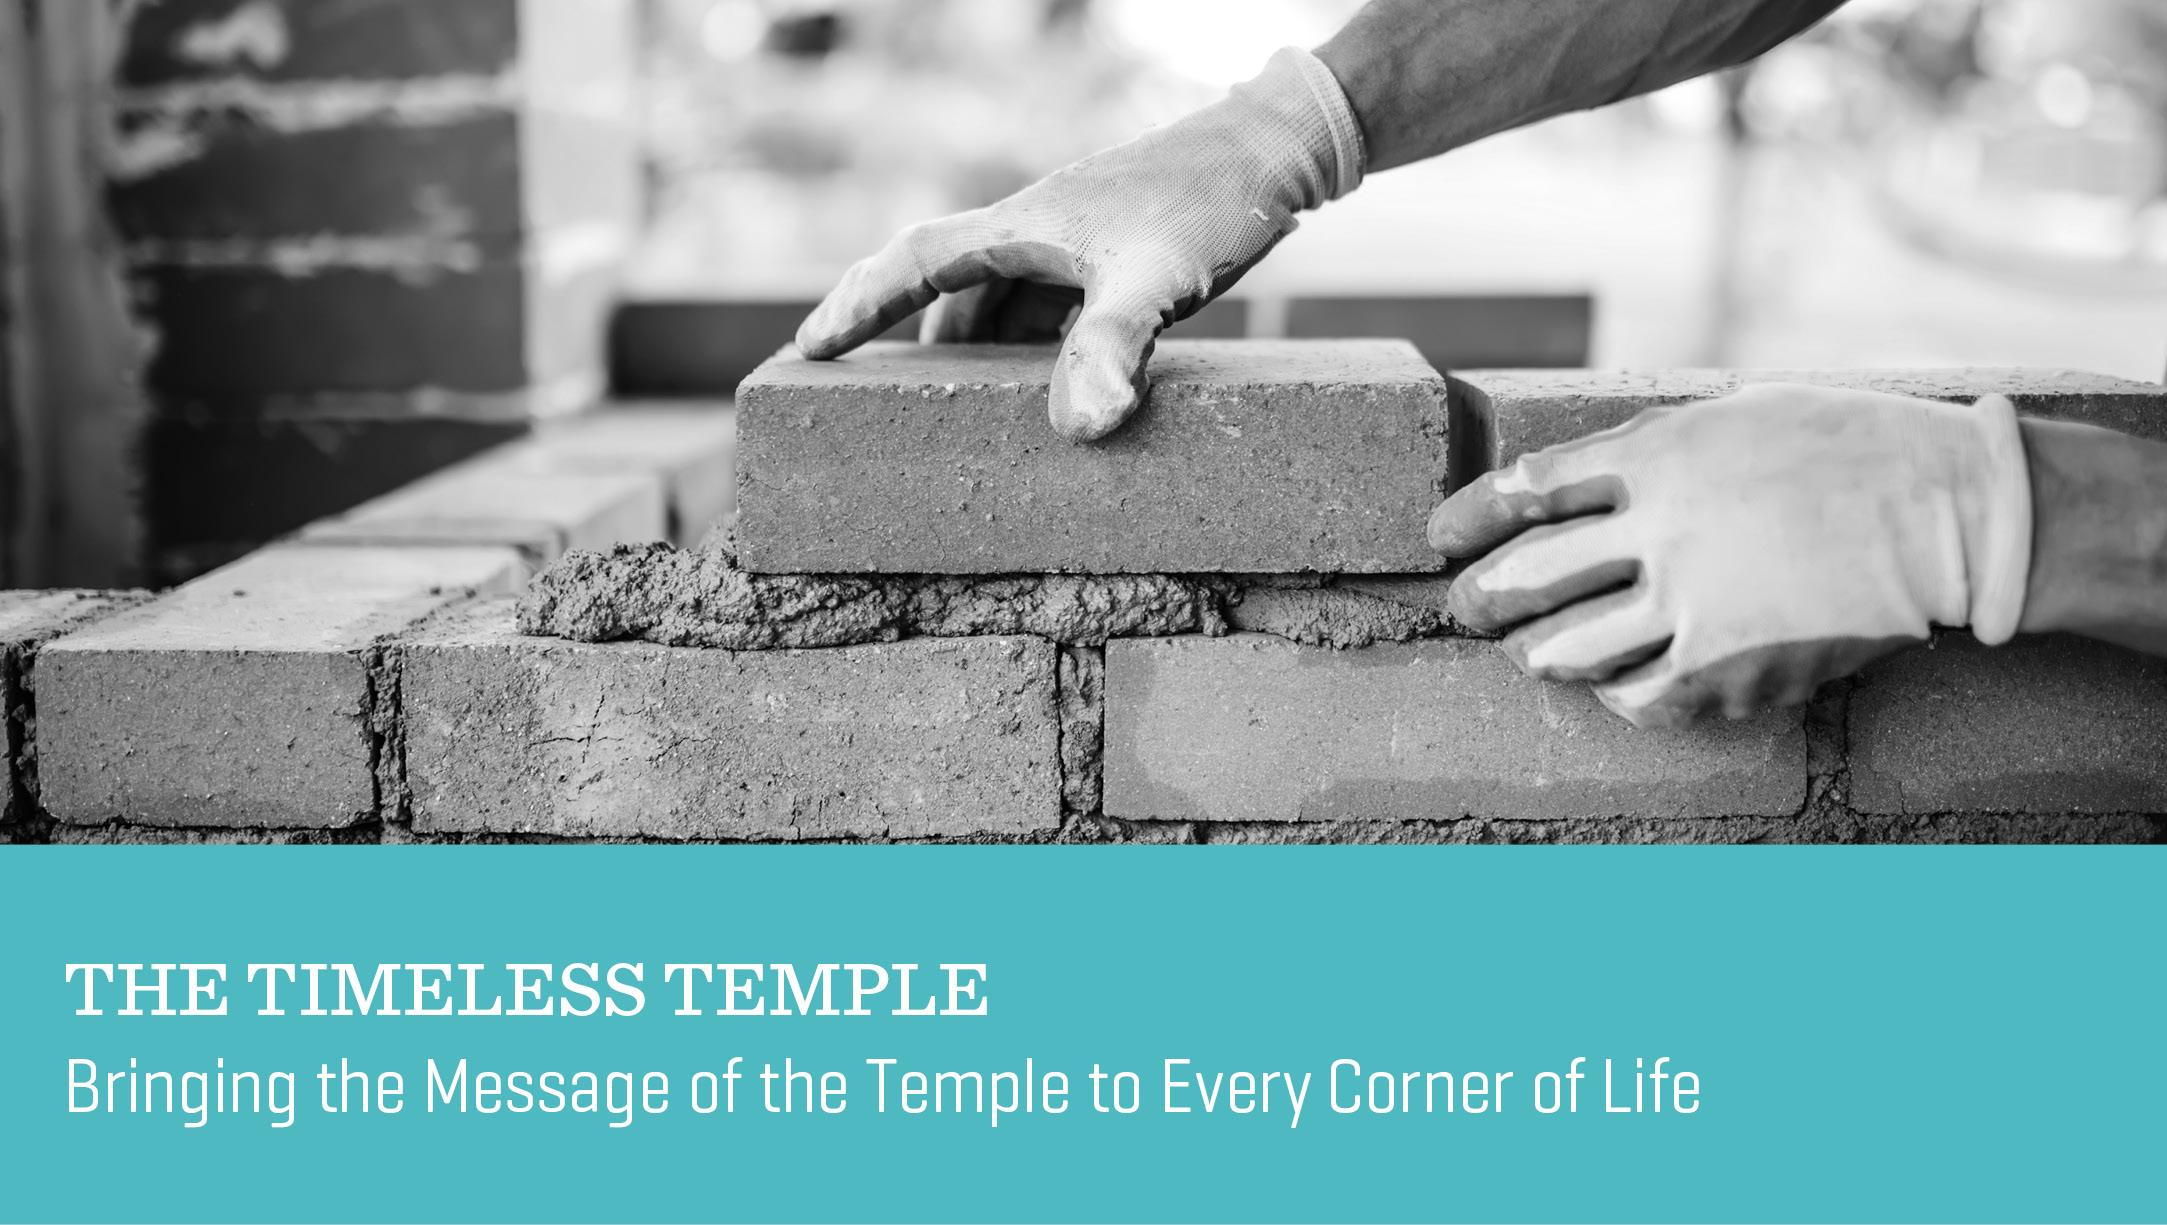 The Timeless Temple